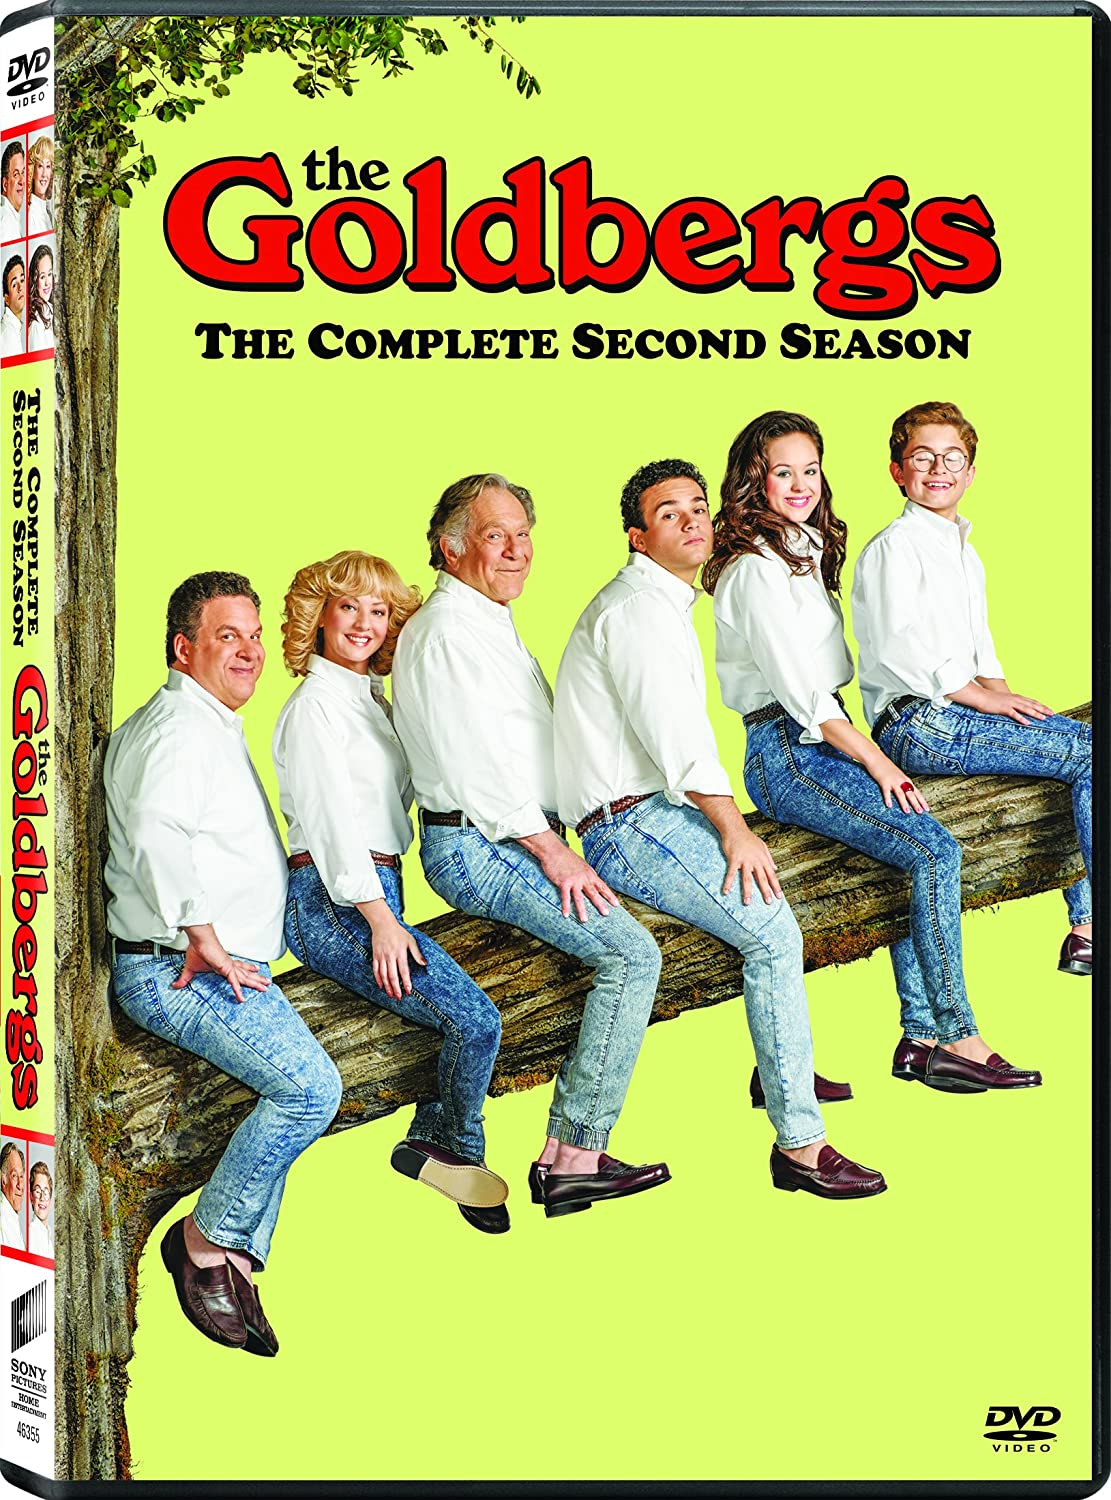 Amazon The Goldbergs Season 2 Jeff Garlin Wendi McLendon Covey Hayley Orrantia Sean Giambrone Troy Gentile George Segal Movies TV